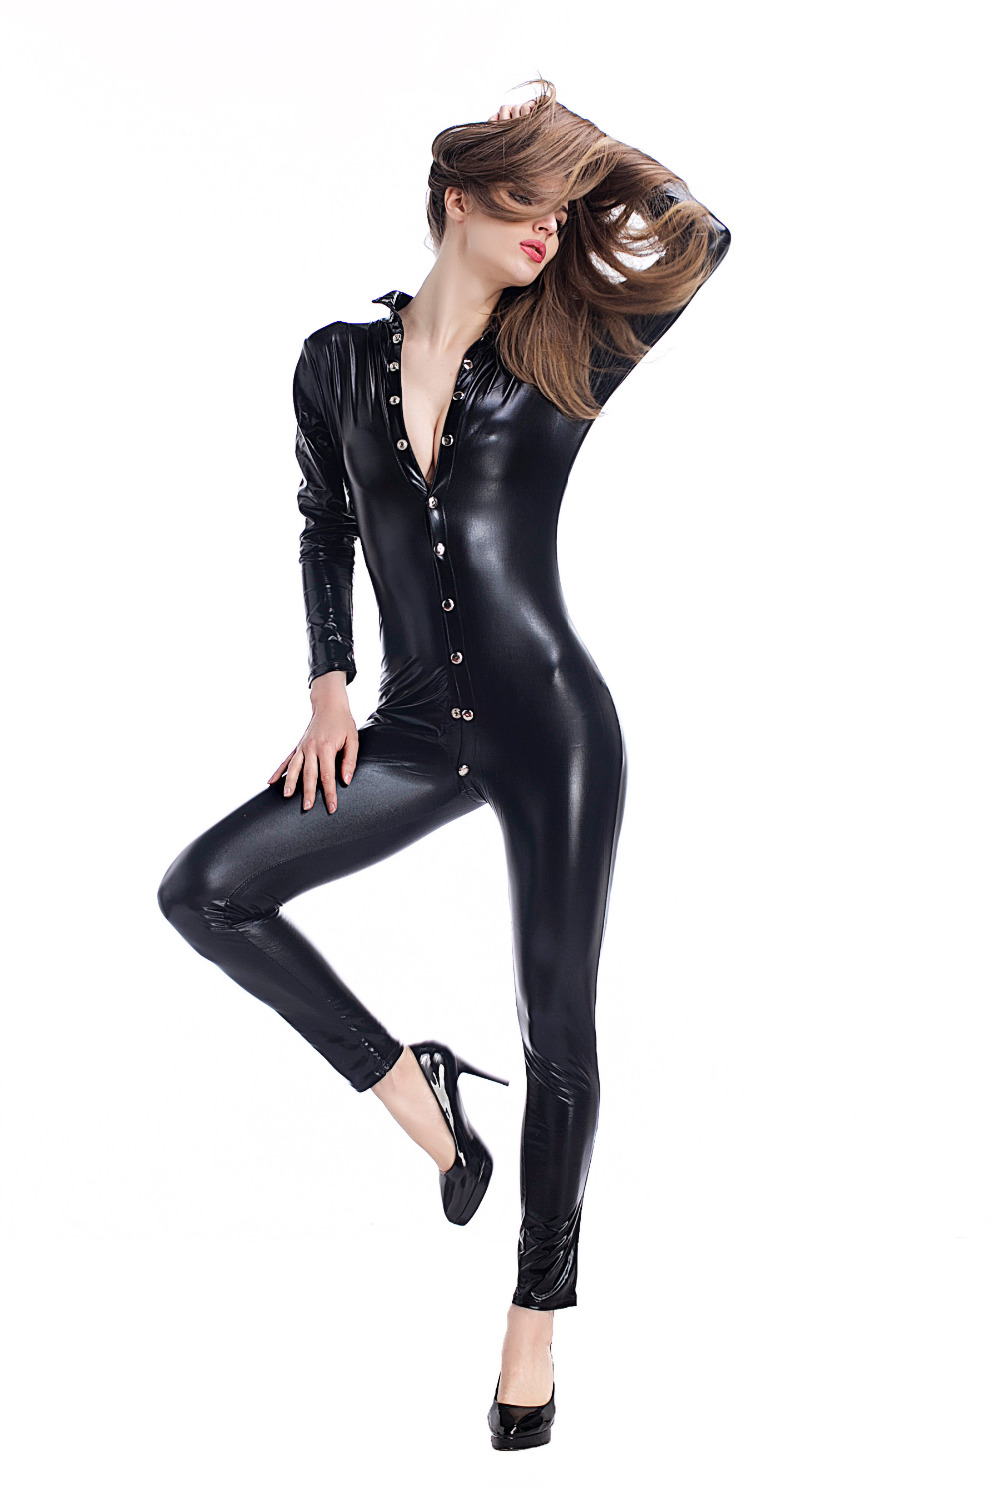 HappyLifea Thick Thighs Save Lives Baby Pajamas Bodysuits Clothes Onesies Jumpsuits Outfits Black